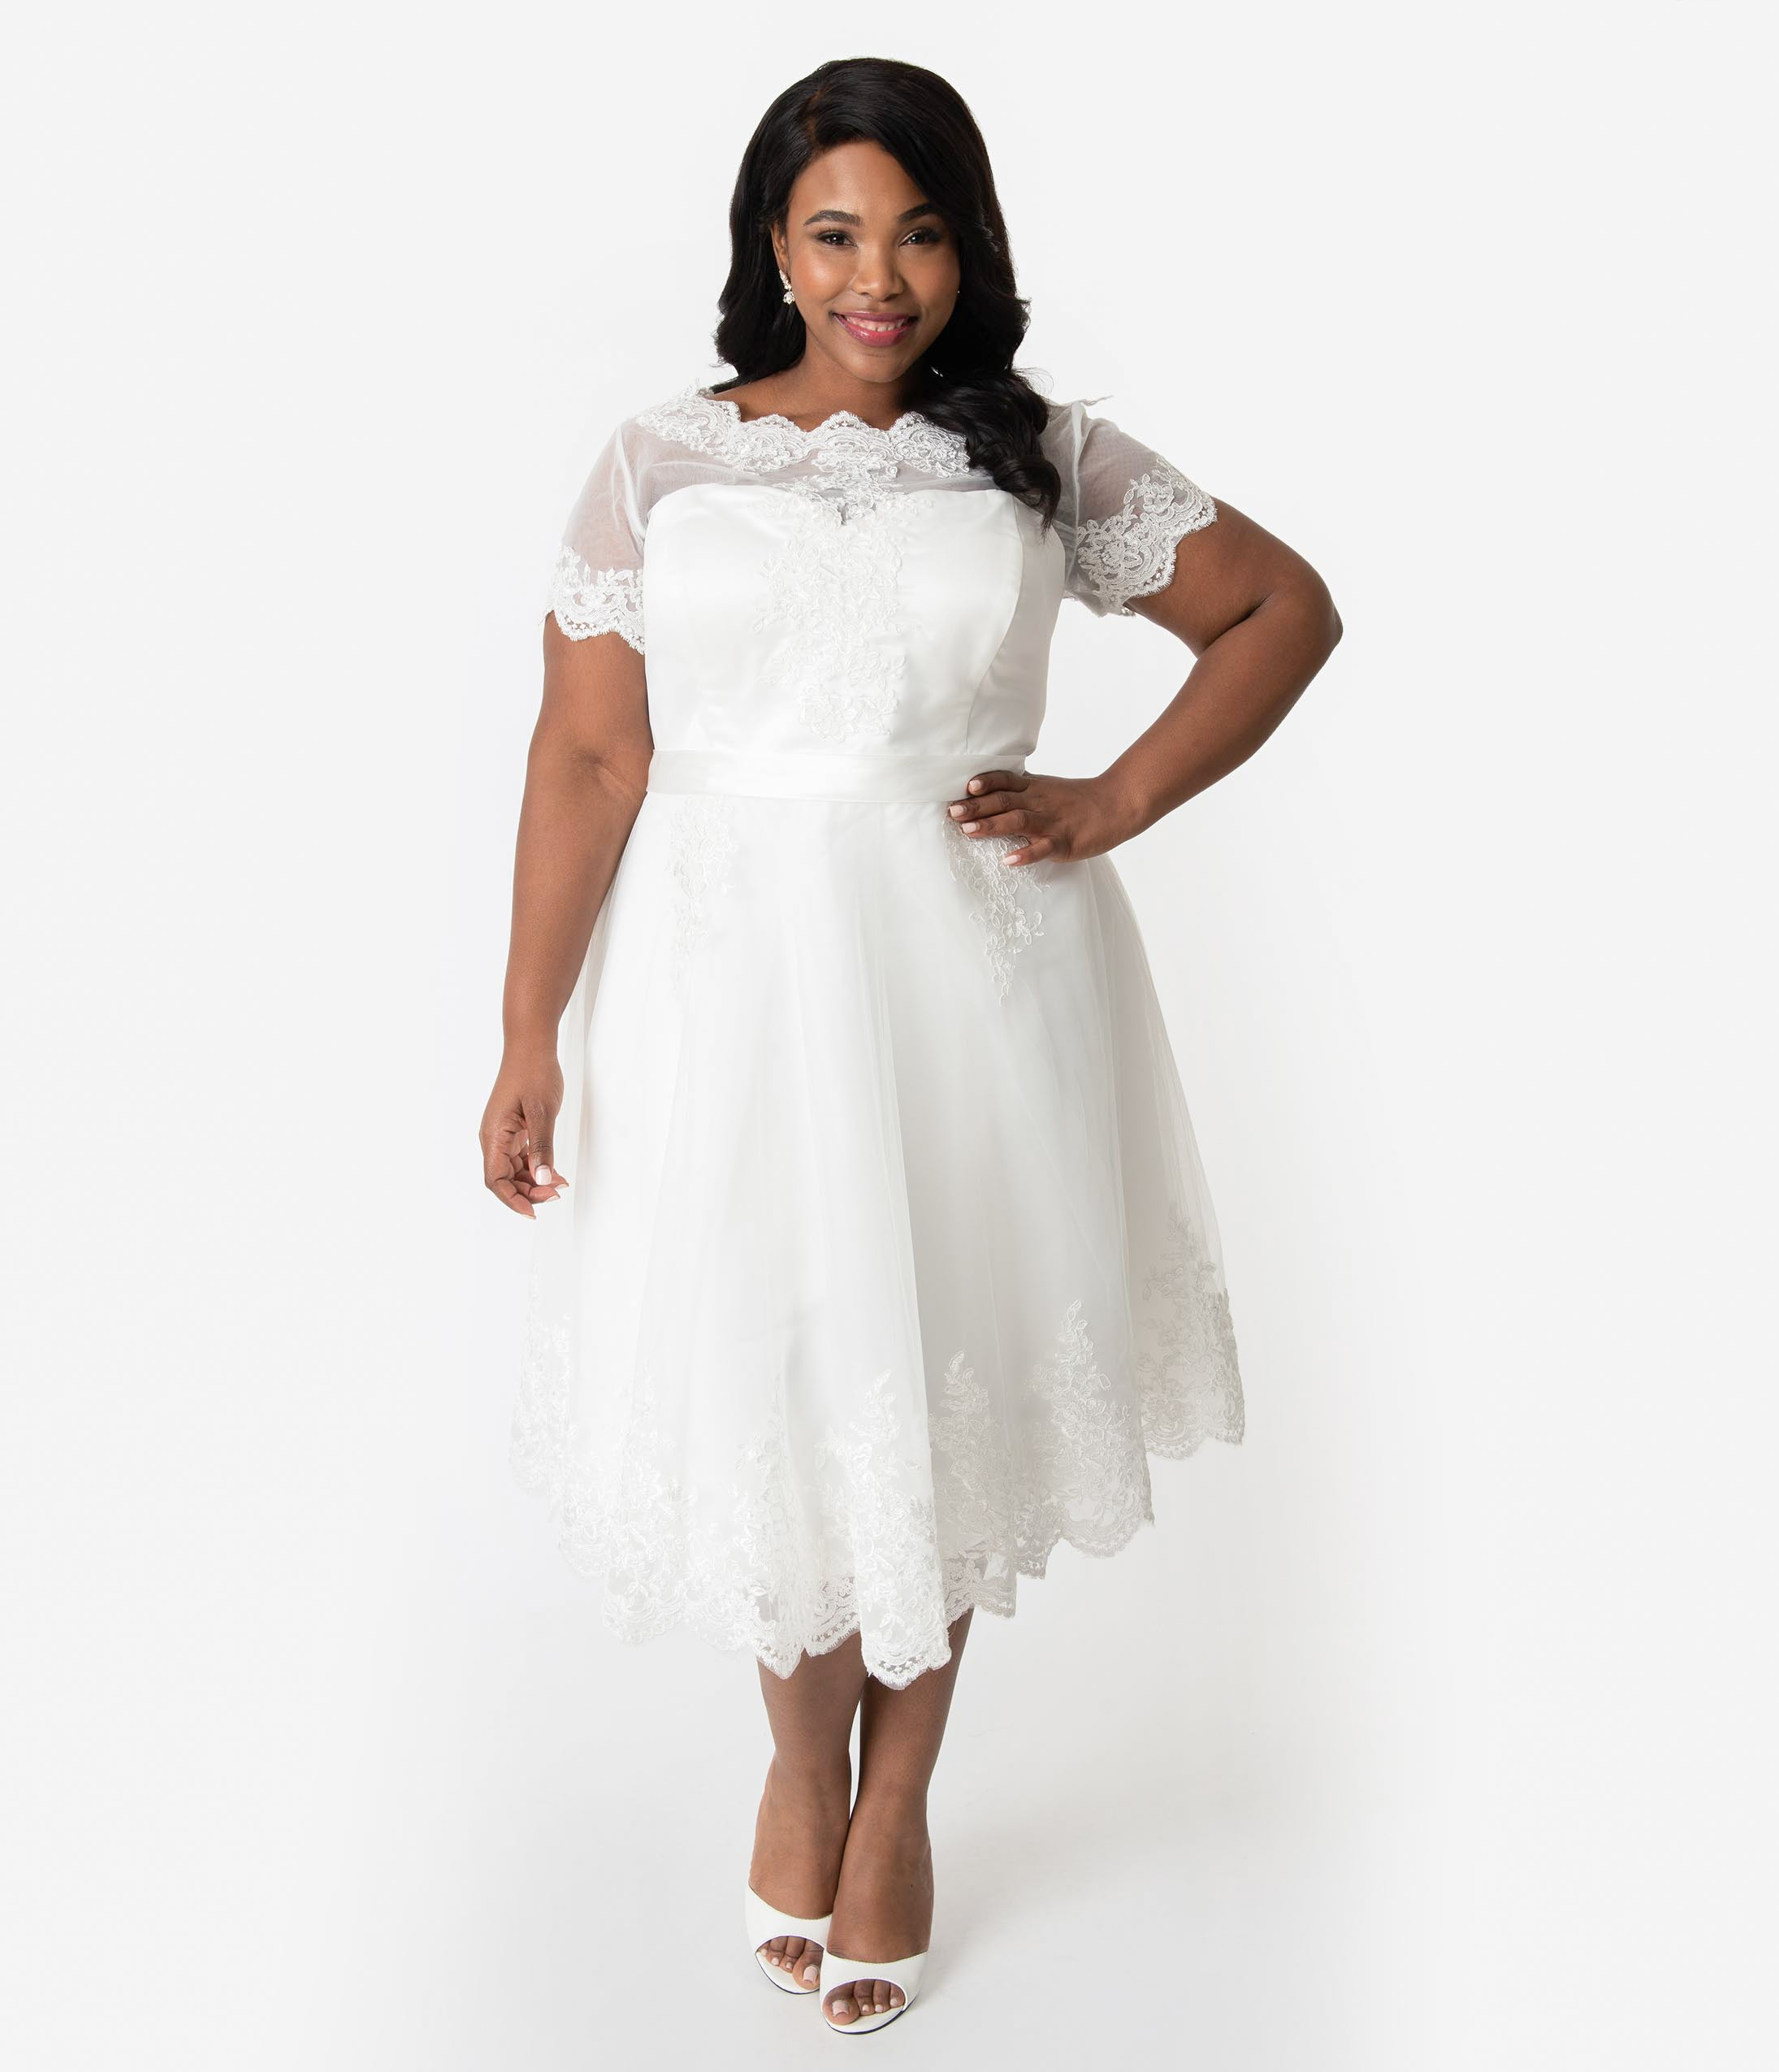 50s Wedding Dress, 1950s Style Wedding Dresses, Rockabilly Weddings Unique Vintage Plus Size 1950S White Lace Short Sleeve Cannes Bridal Dress $248.00 AT vintagedancer.com